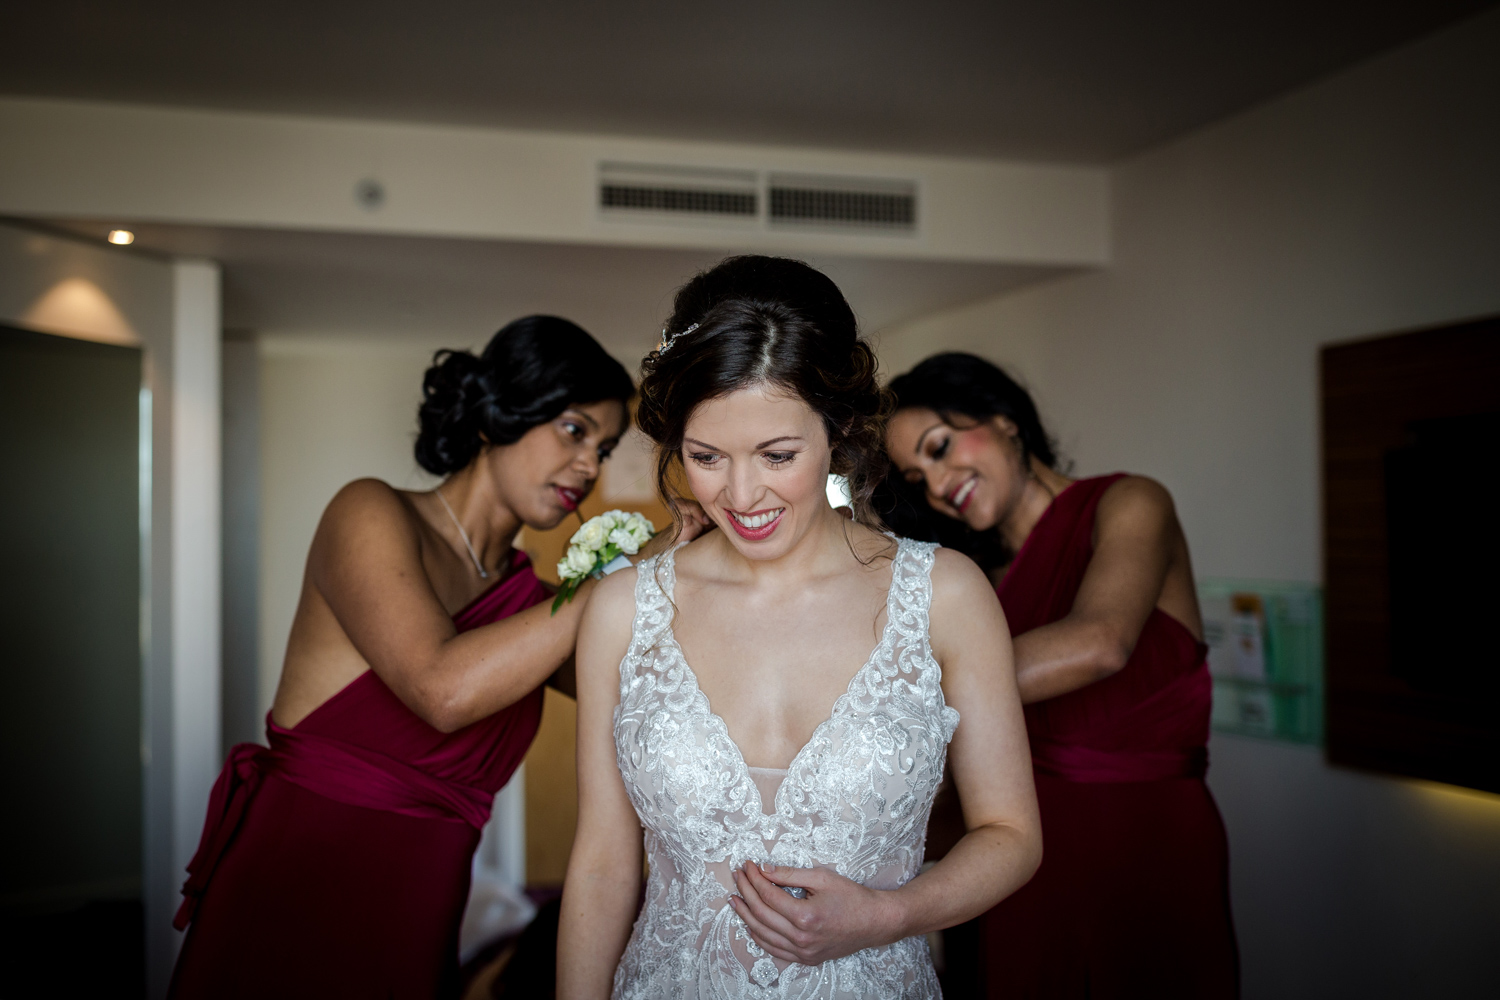 The bride getting ready during her Lowry Wedding in Salford Quays